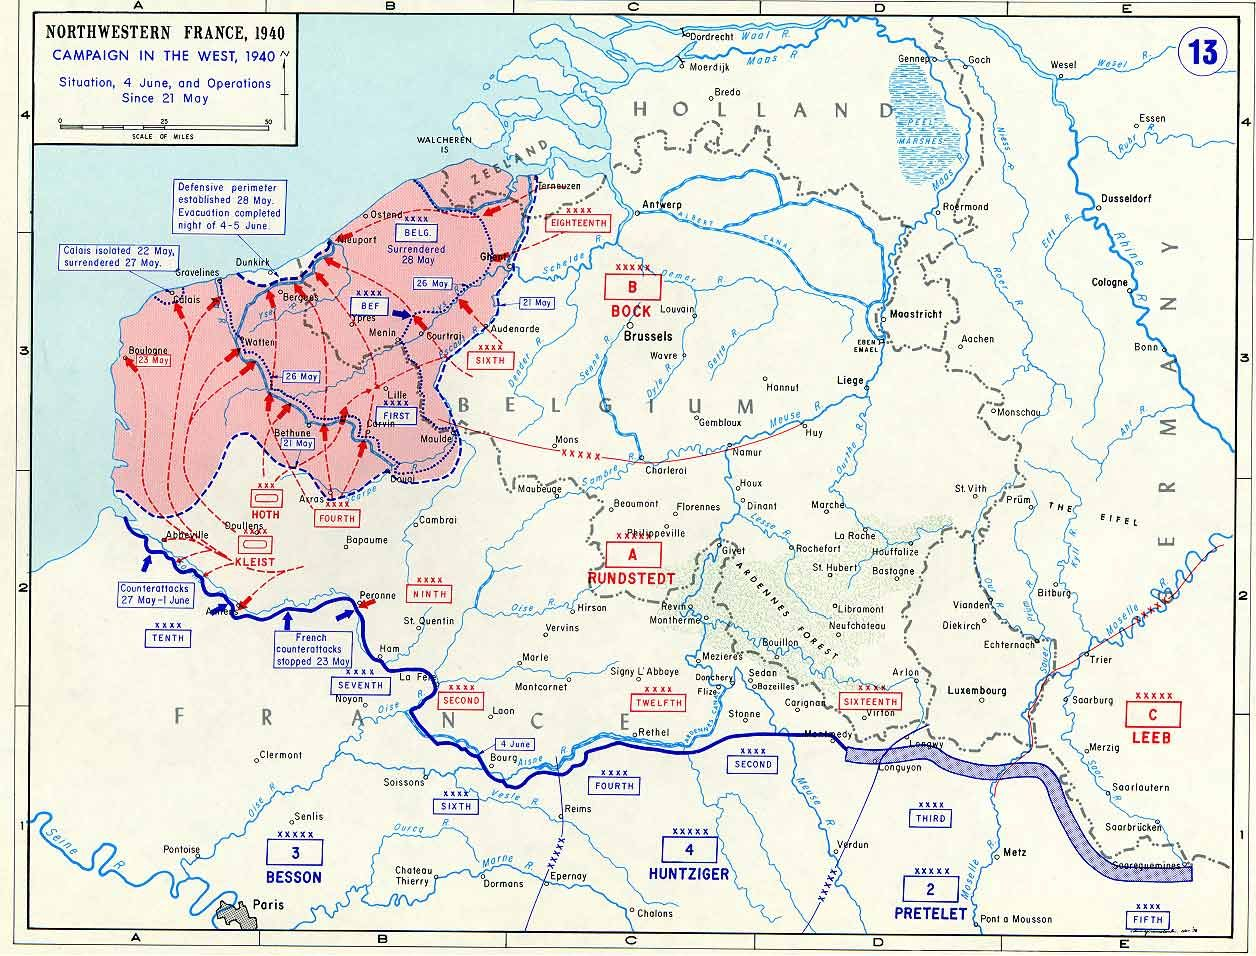 Map Of France Dunkirk.The Battle Of Dunkerque Pinstory Battle Of Dunkirk Dunkirk Map Map